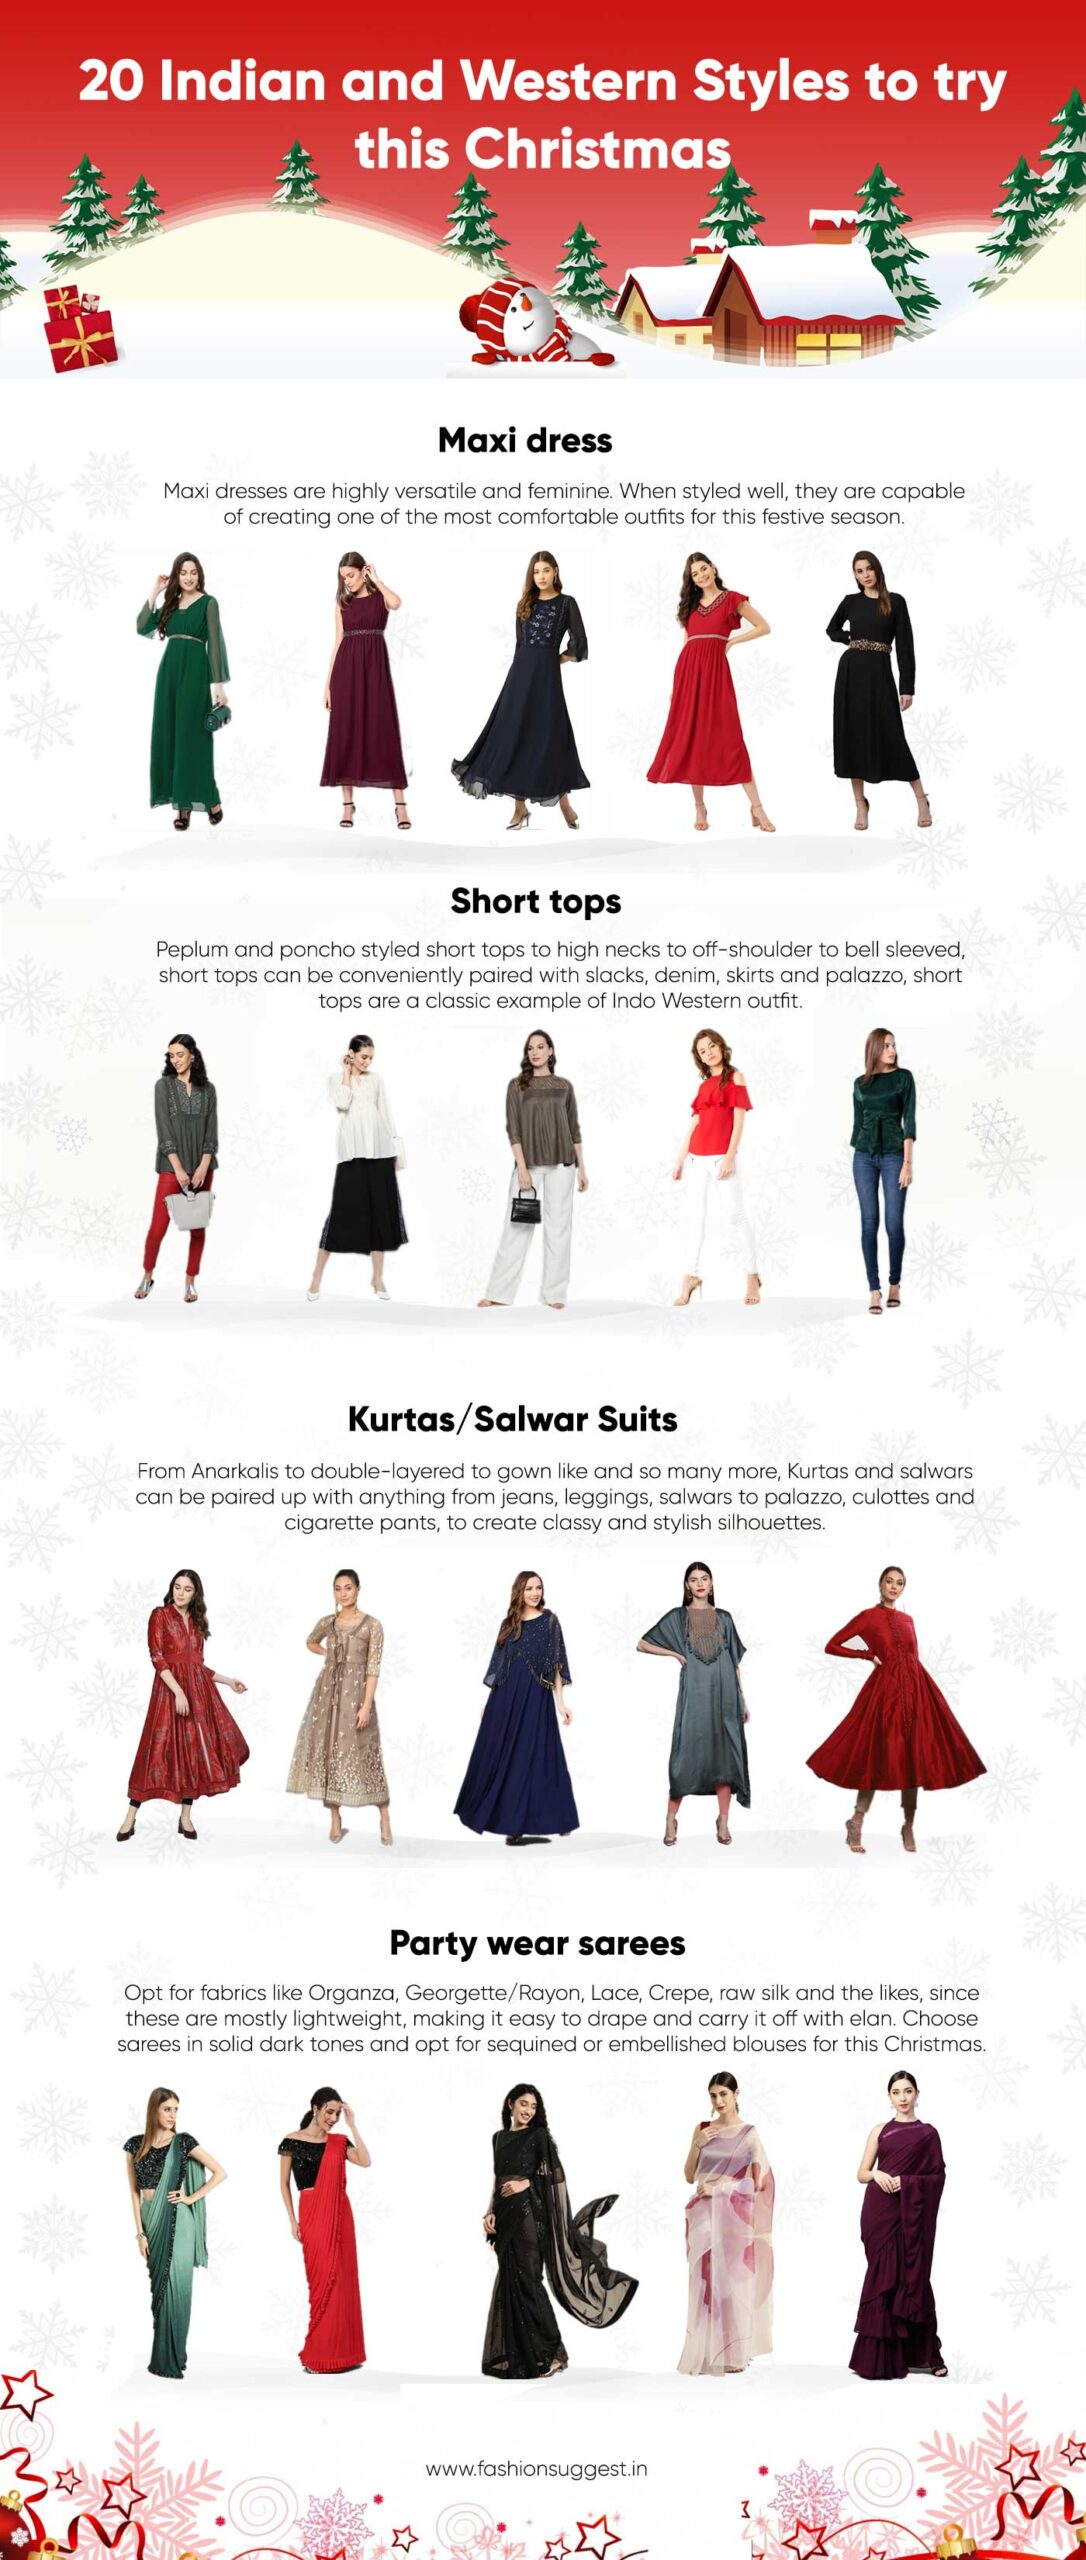 Indian And Western Christmas Outfit Styles For Women Fashion Suggest